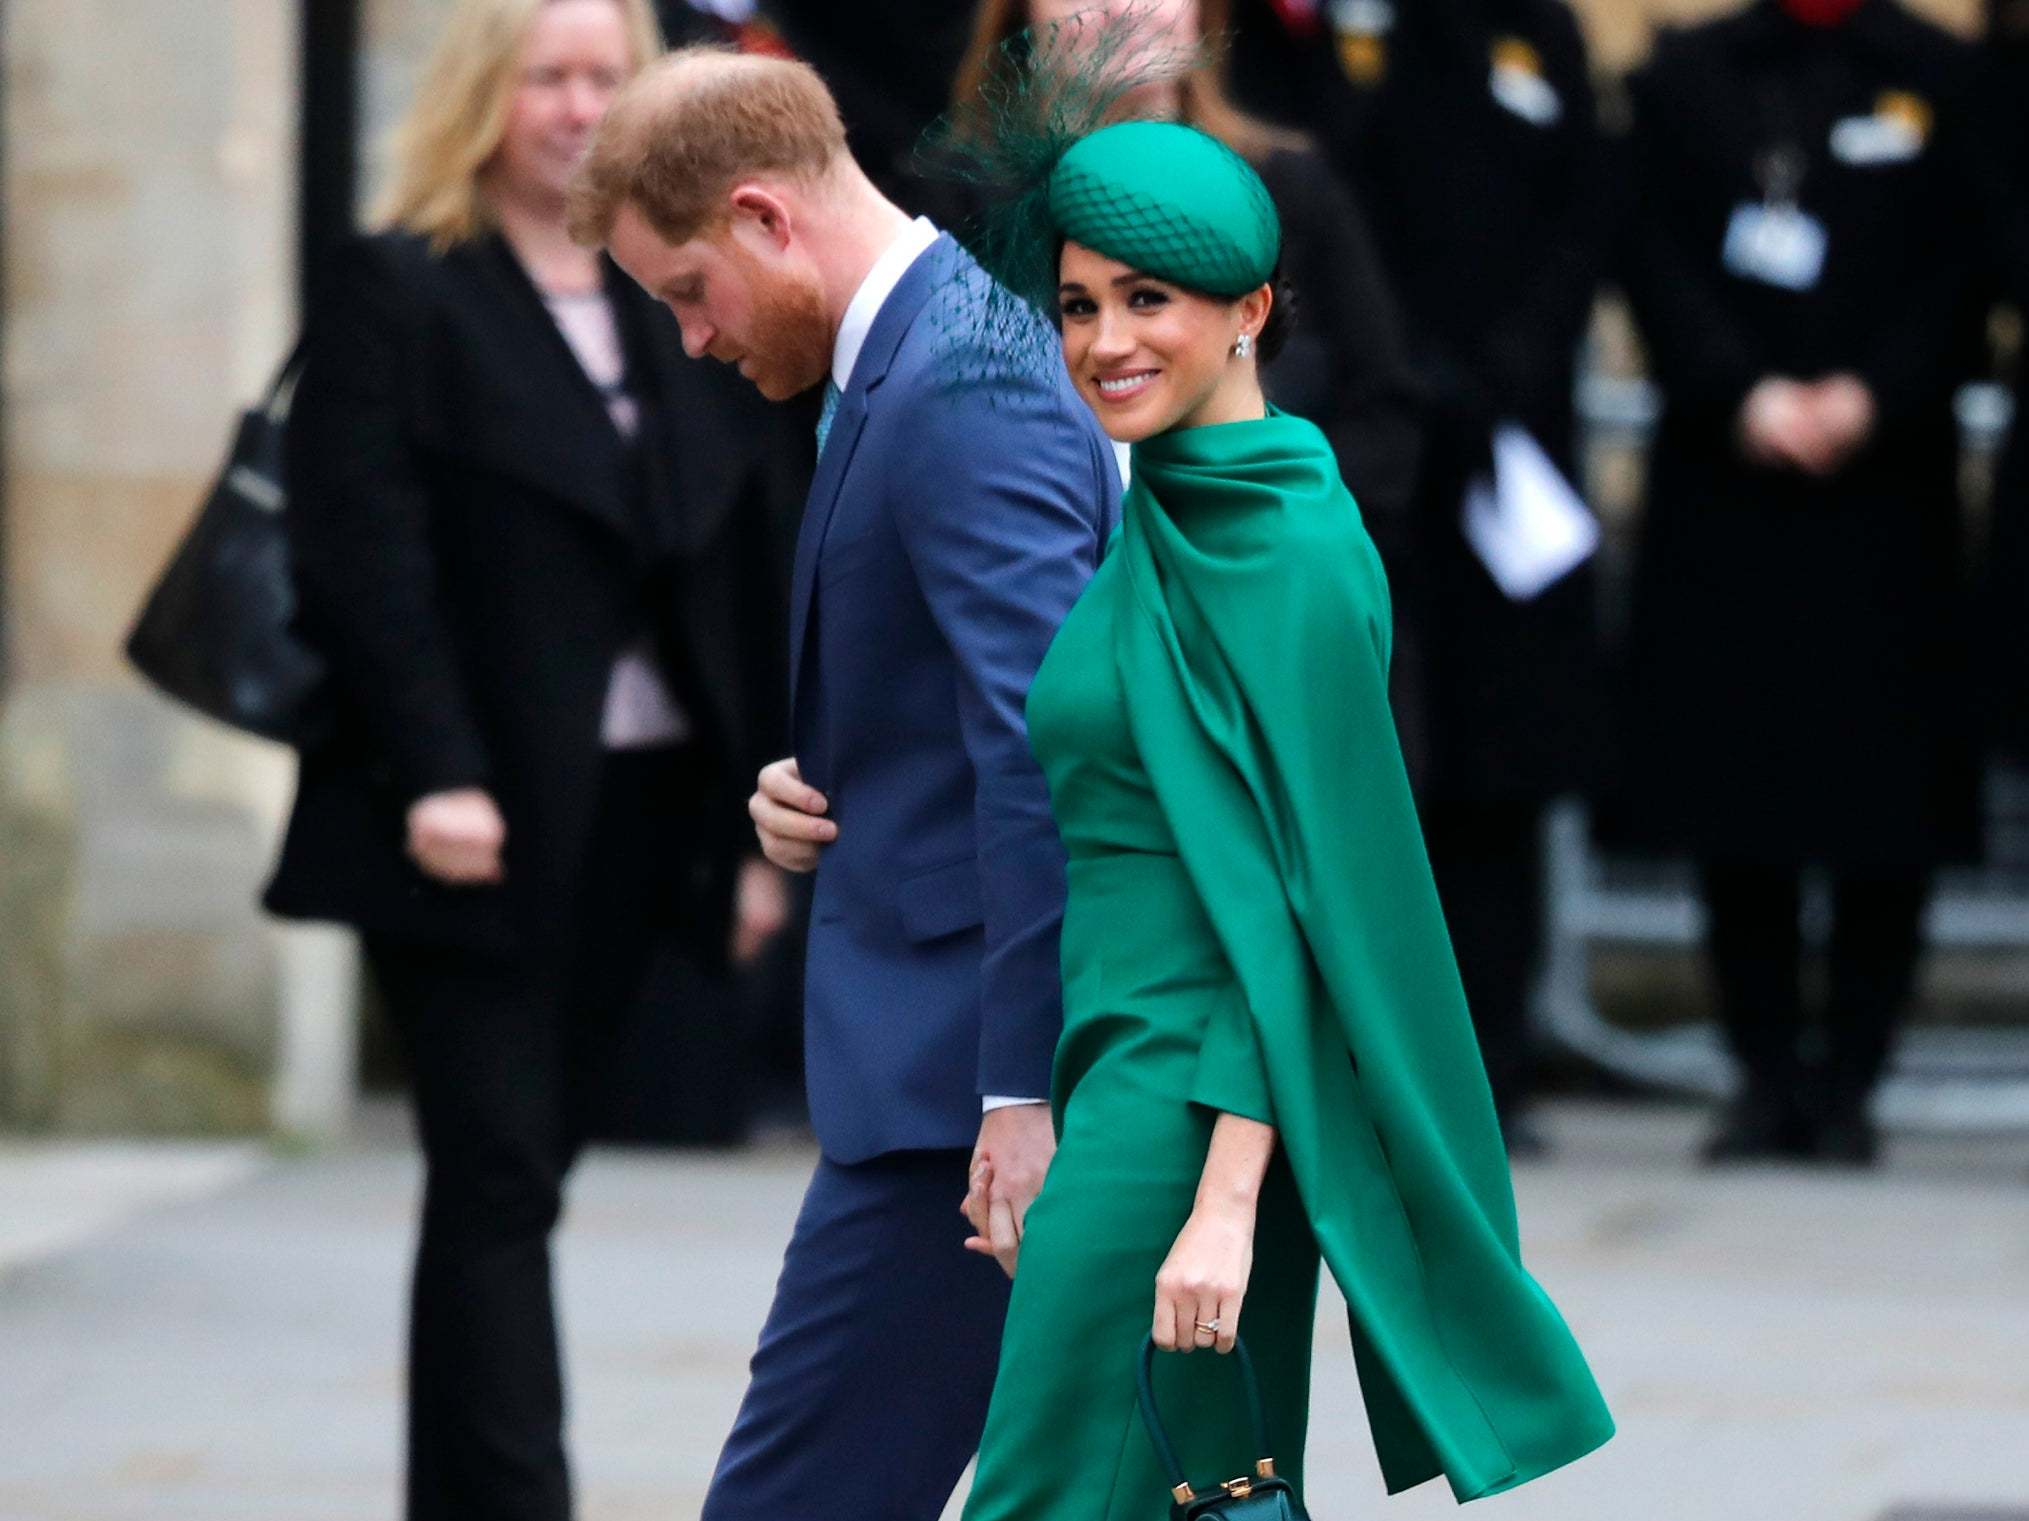 Meghan Markle and Prince Harry: Duchess wears dress by Emilia Wickstead for final royal engagement